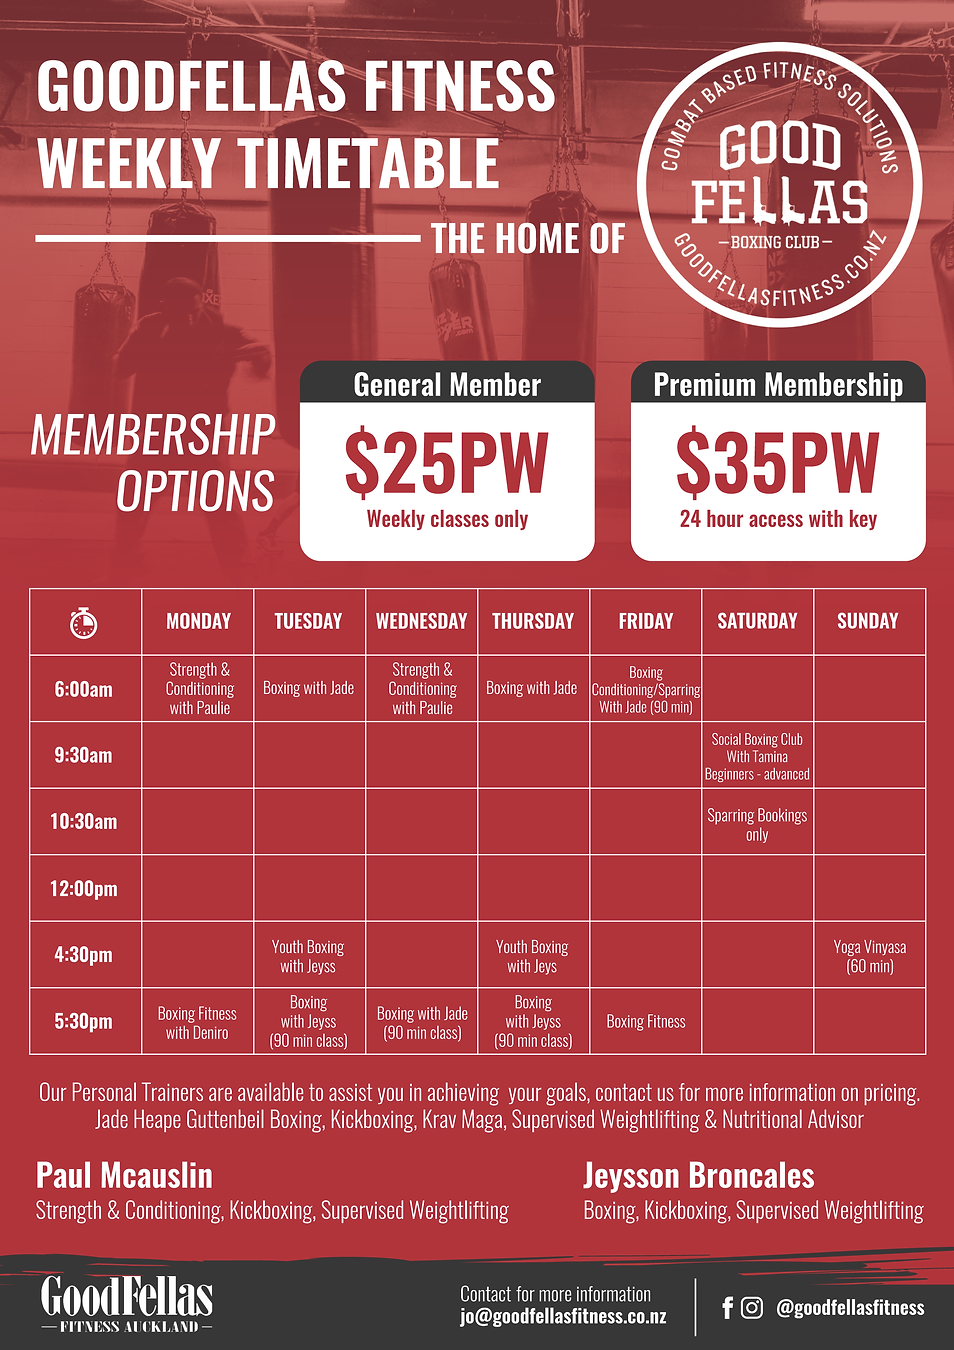 Goodfellas Fitness Auckland Weekly Timetable